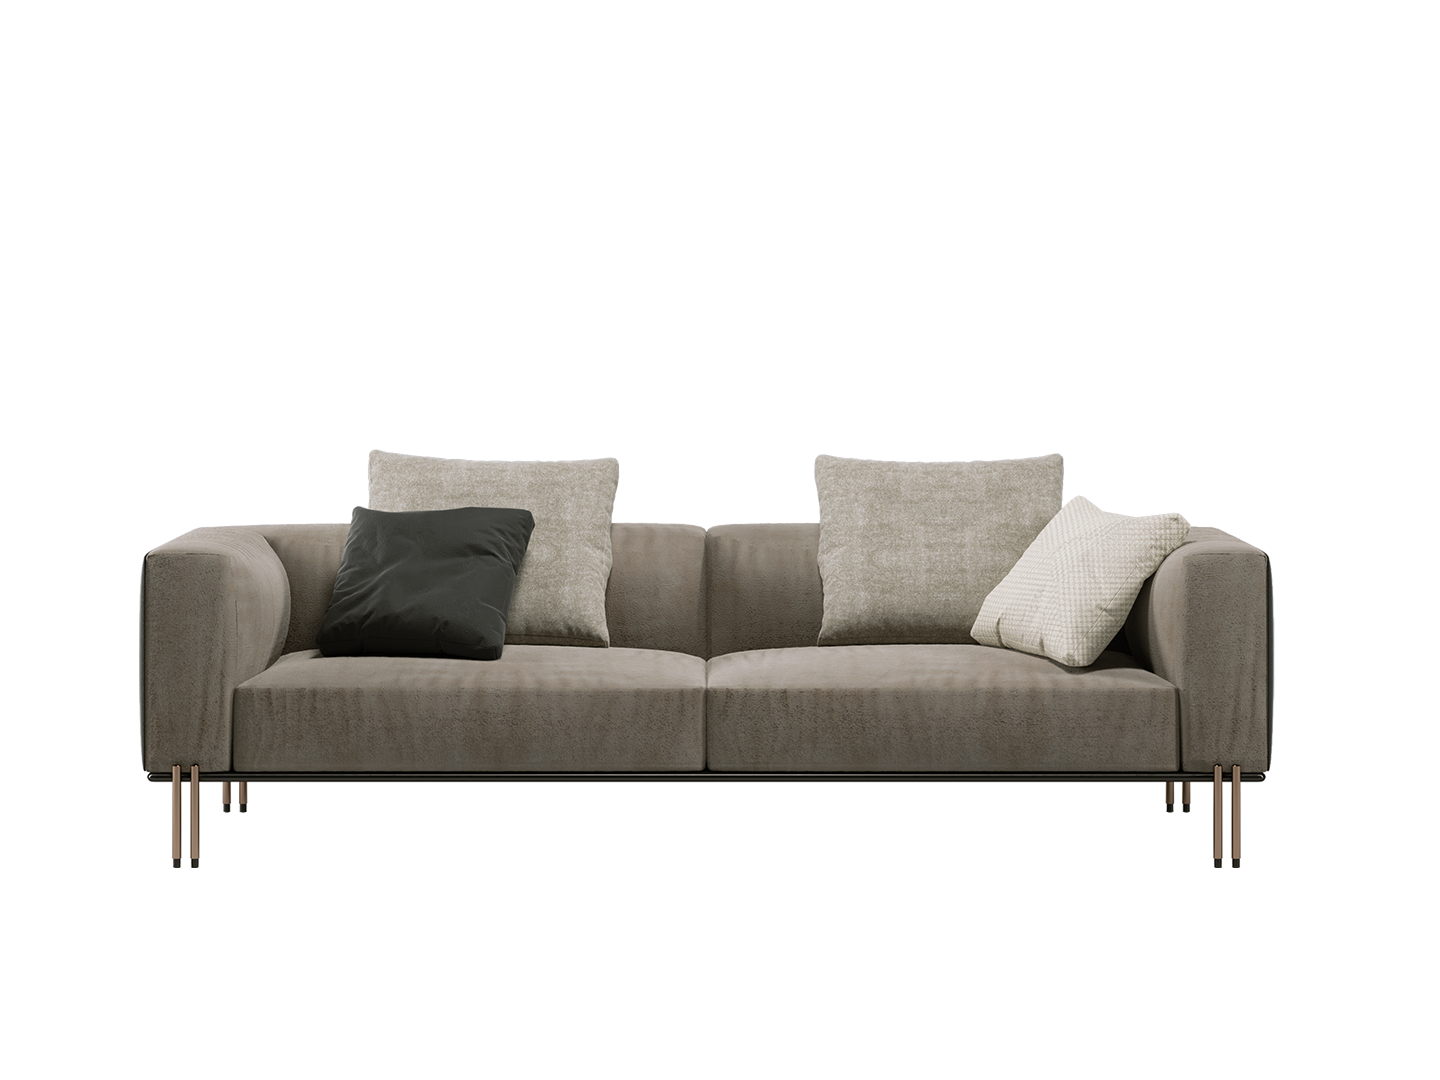 Soft-Ratio sofa